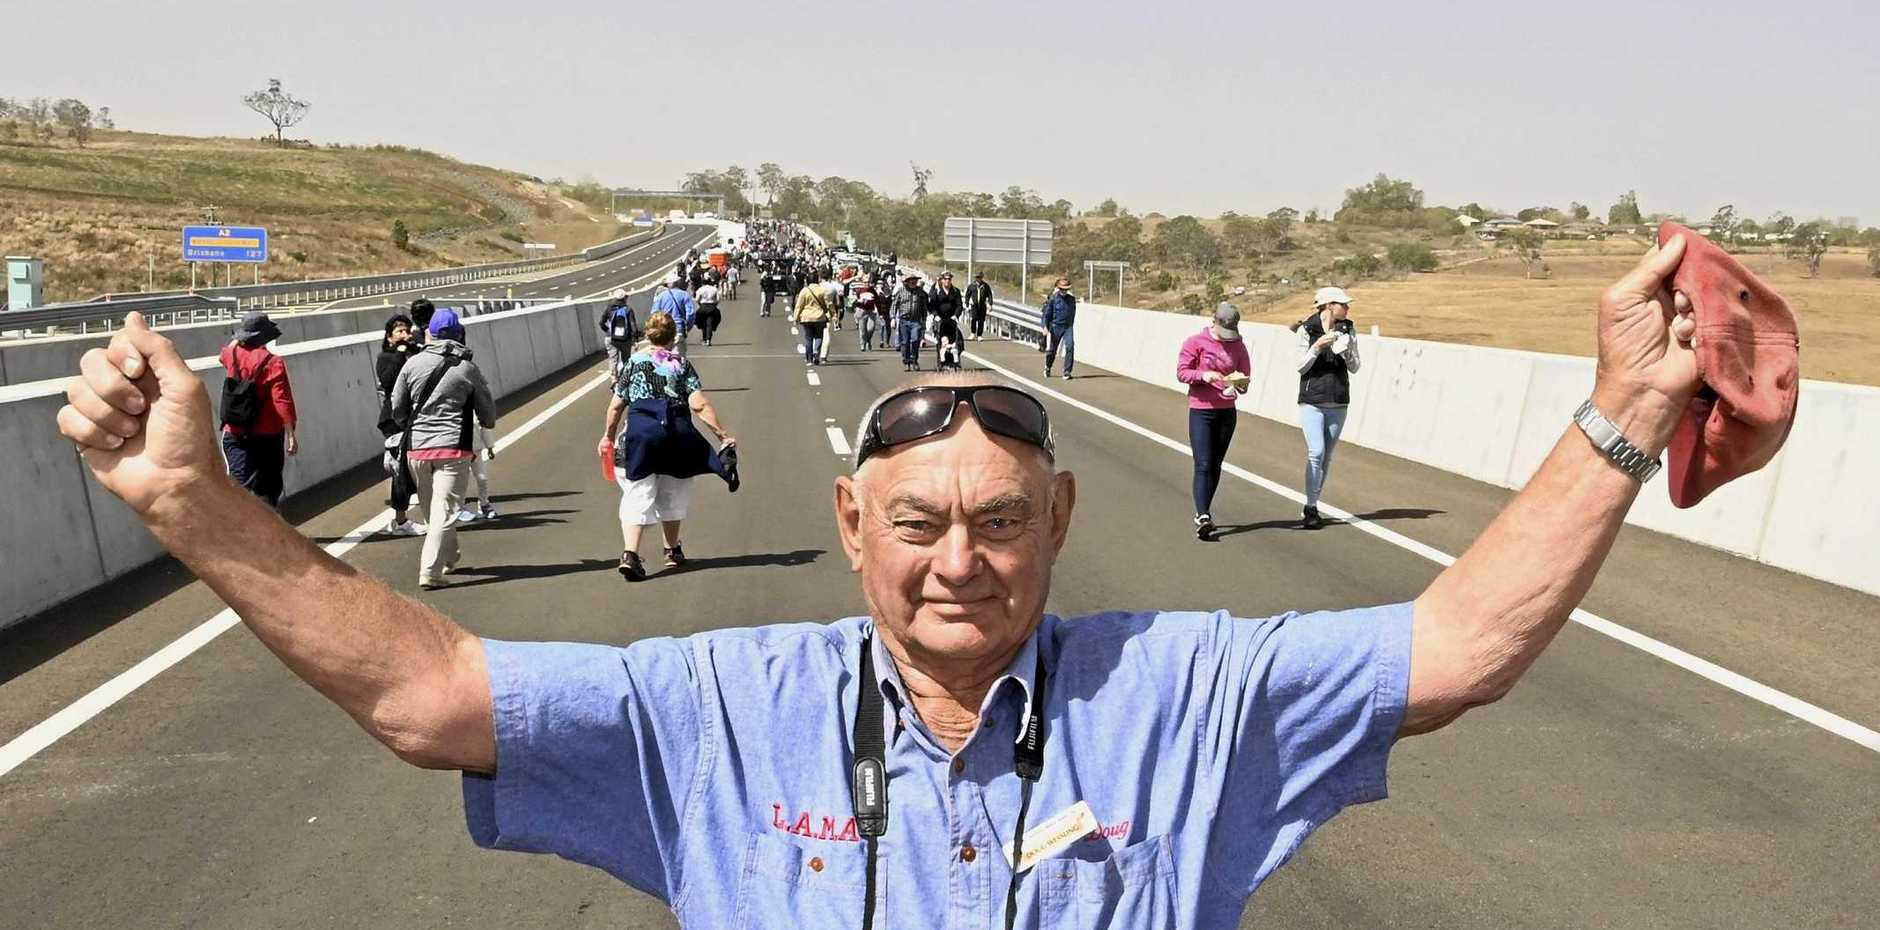 Doug Wessling had open heart surgery a couple of years ago and was proud to complete the walk on the Toowoomba Bypass.